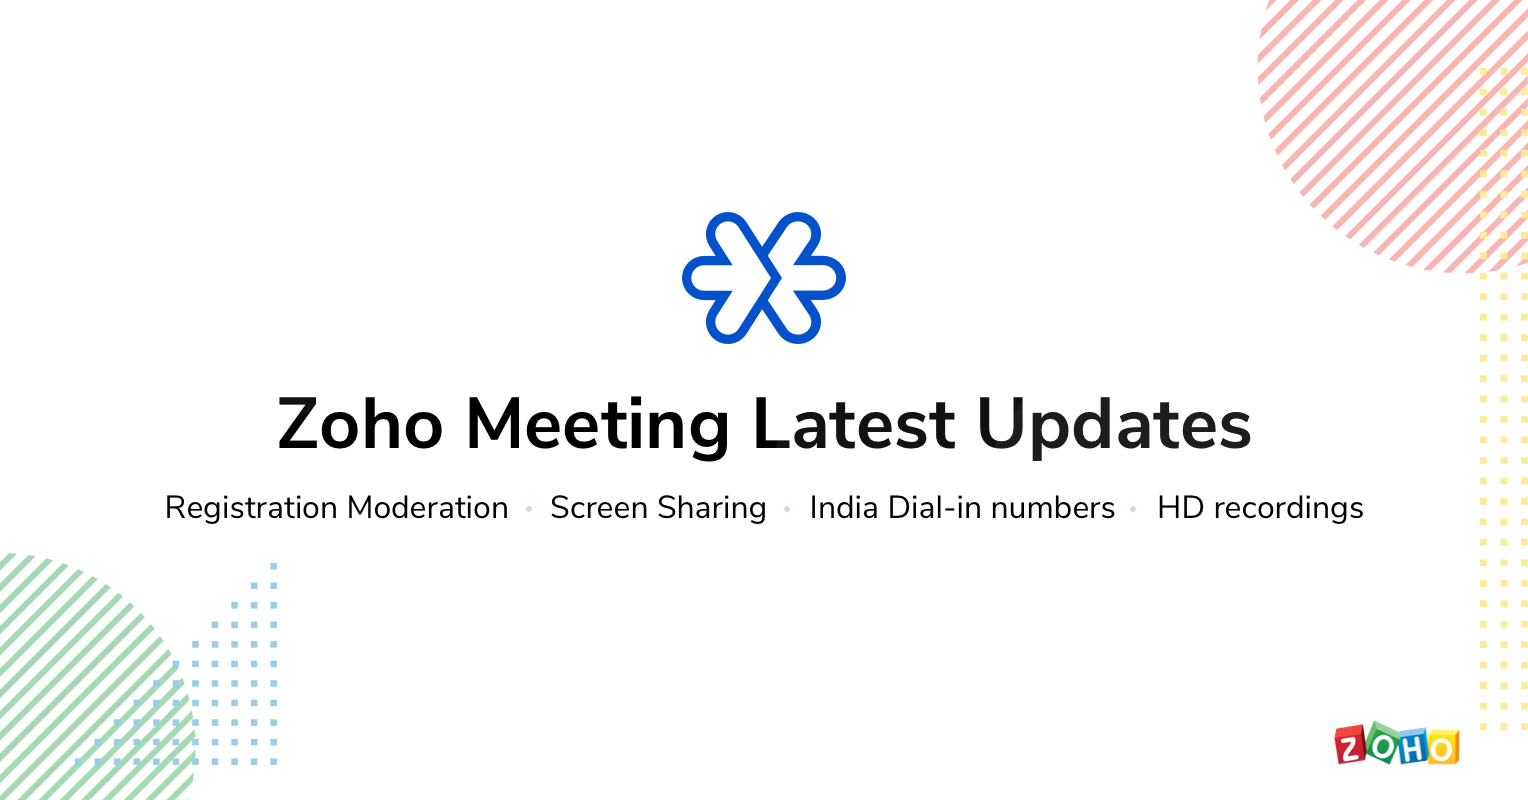 Zoho Meeting Latest Updates:  Registration Moderation for webinars, Screen Sharing for meetings, Dial-in numbers for India, and HD recordings.